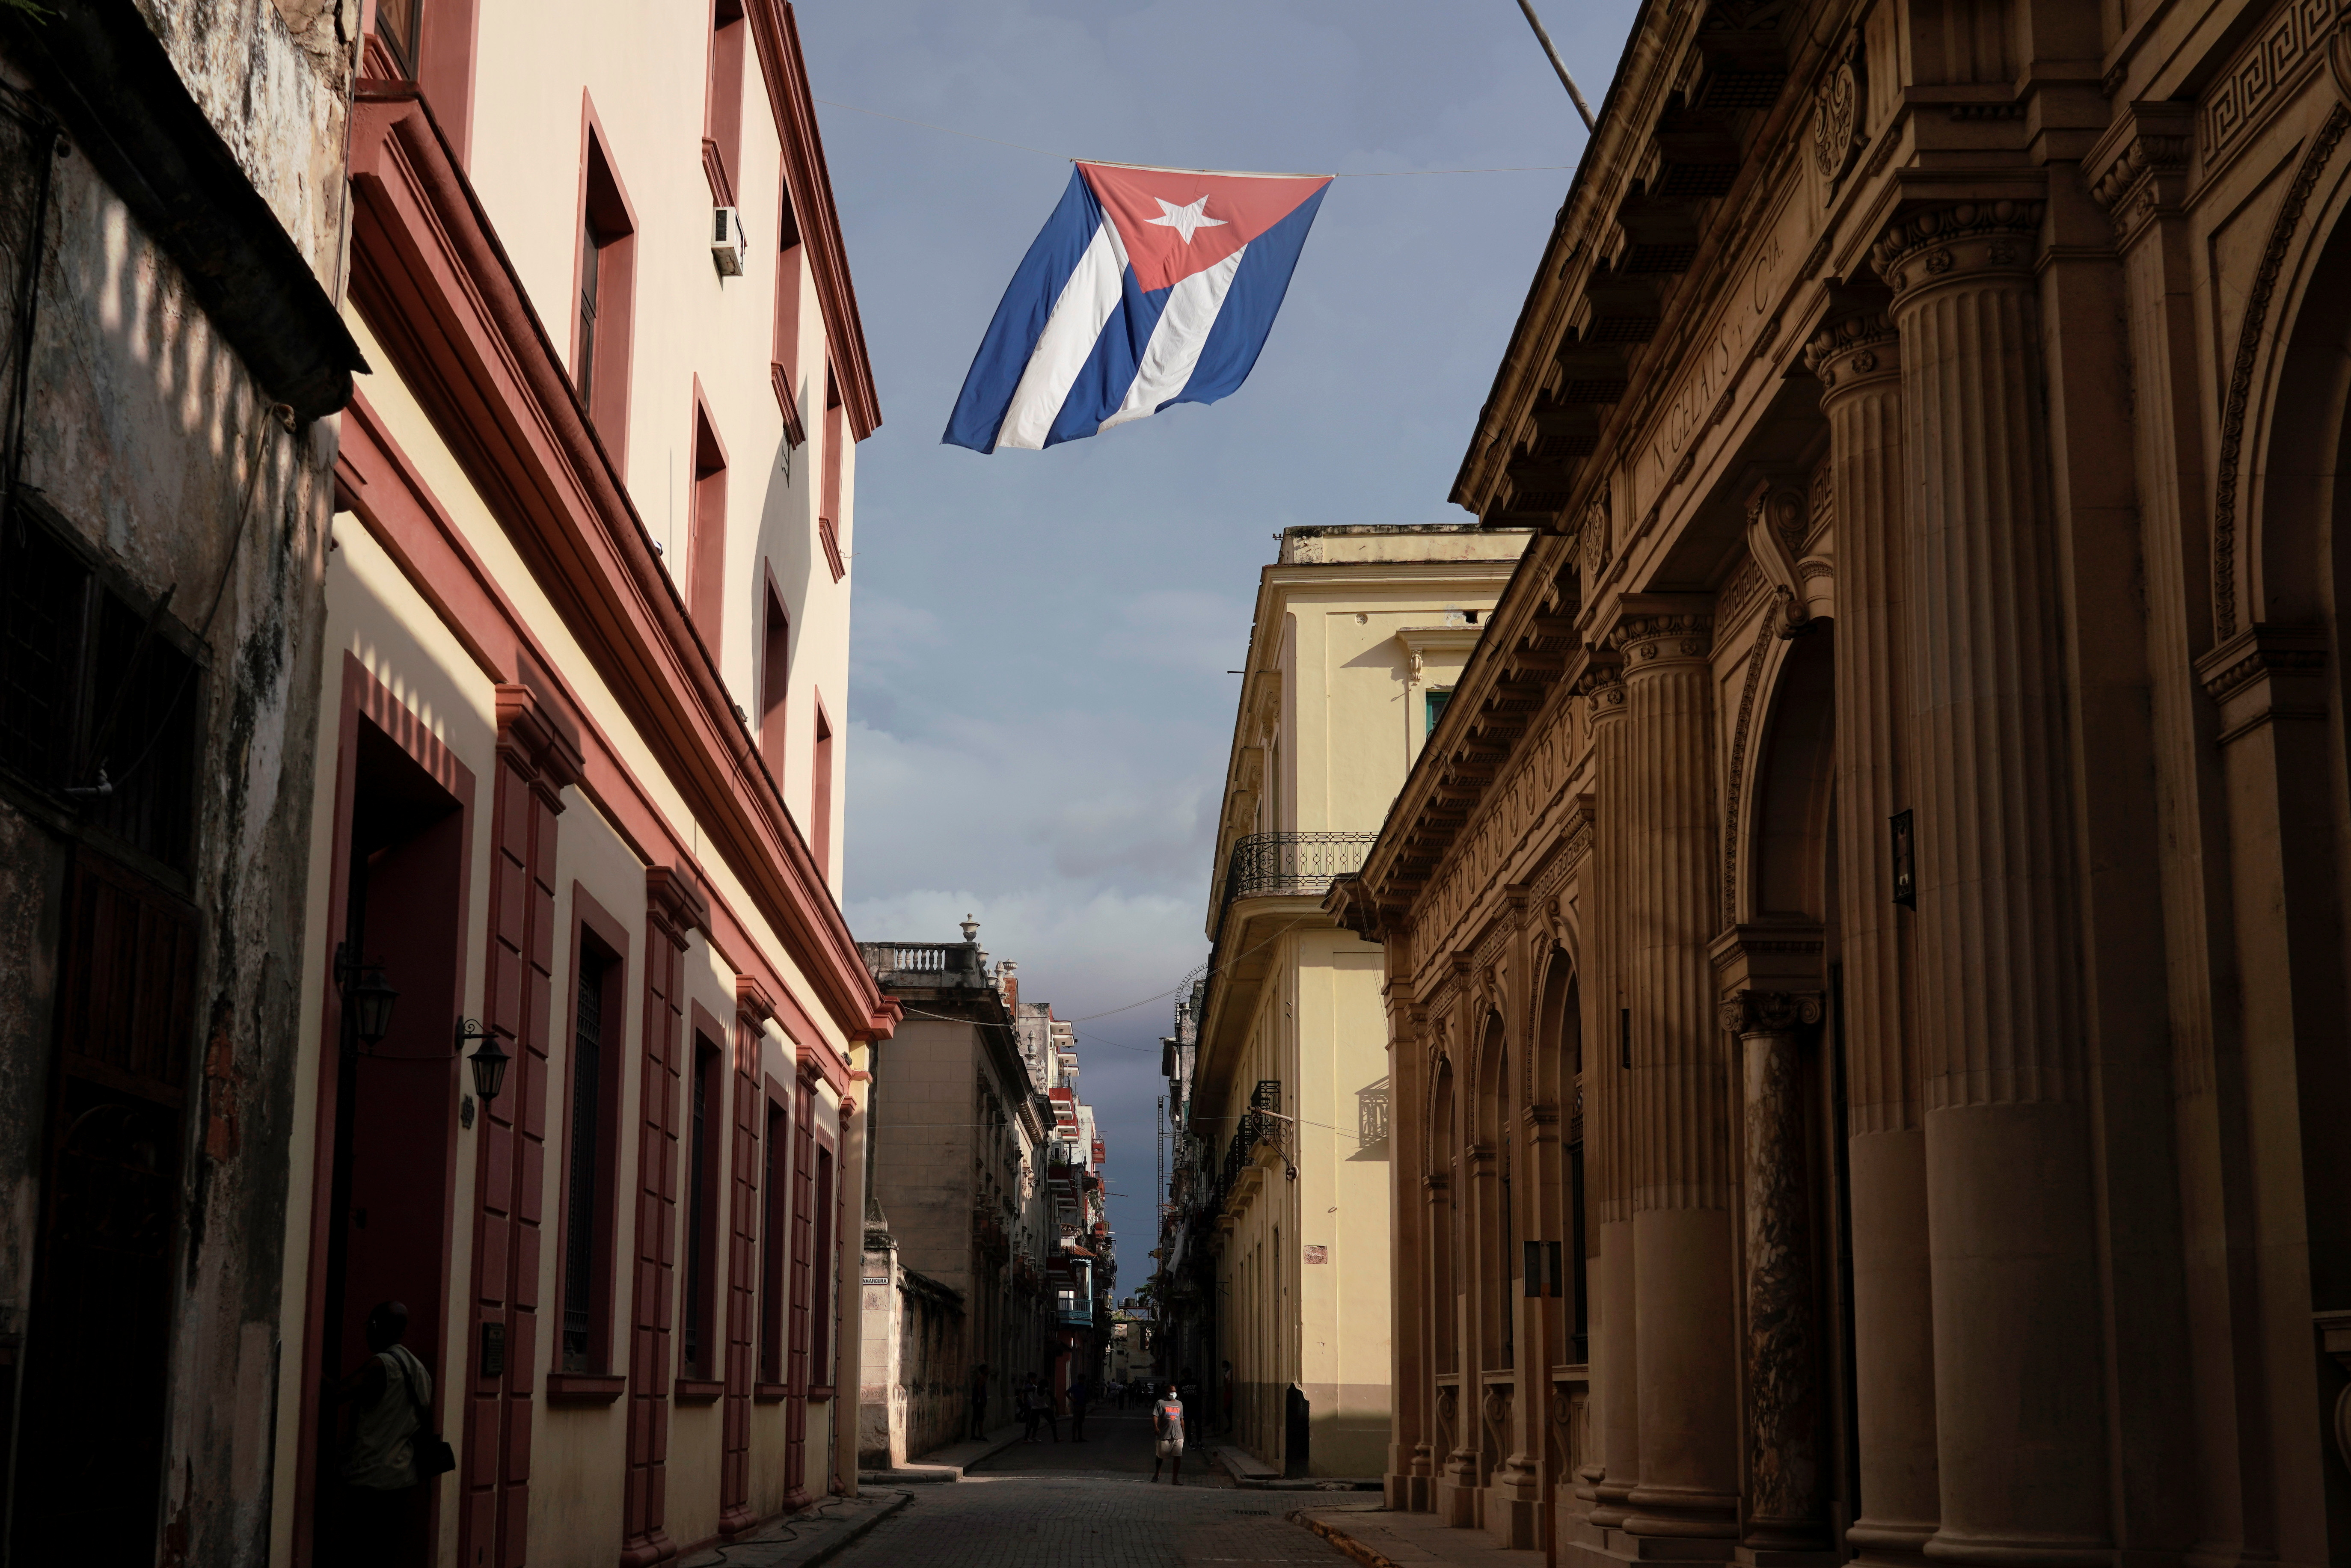 A Cuban flag flies over a street amid concerns about the spread of the coronavirus disease (COVID-19) in downtown Havana, Cuba, July 18, 2021. Picture taken July 18, 2021. REUTERS/Alexandre Meneghini